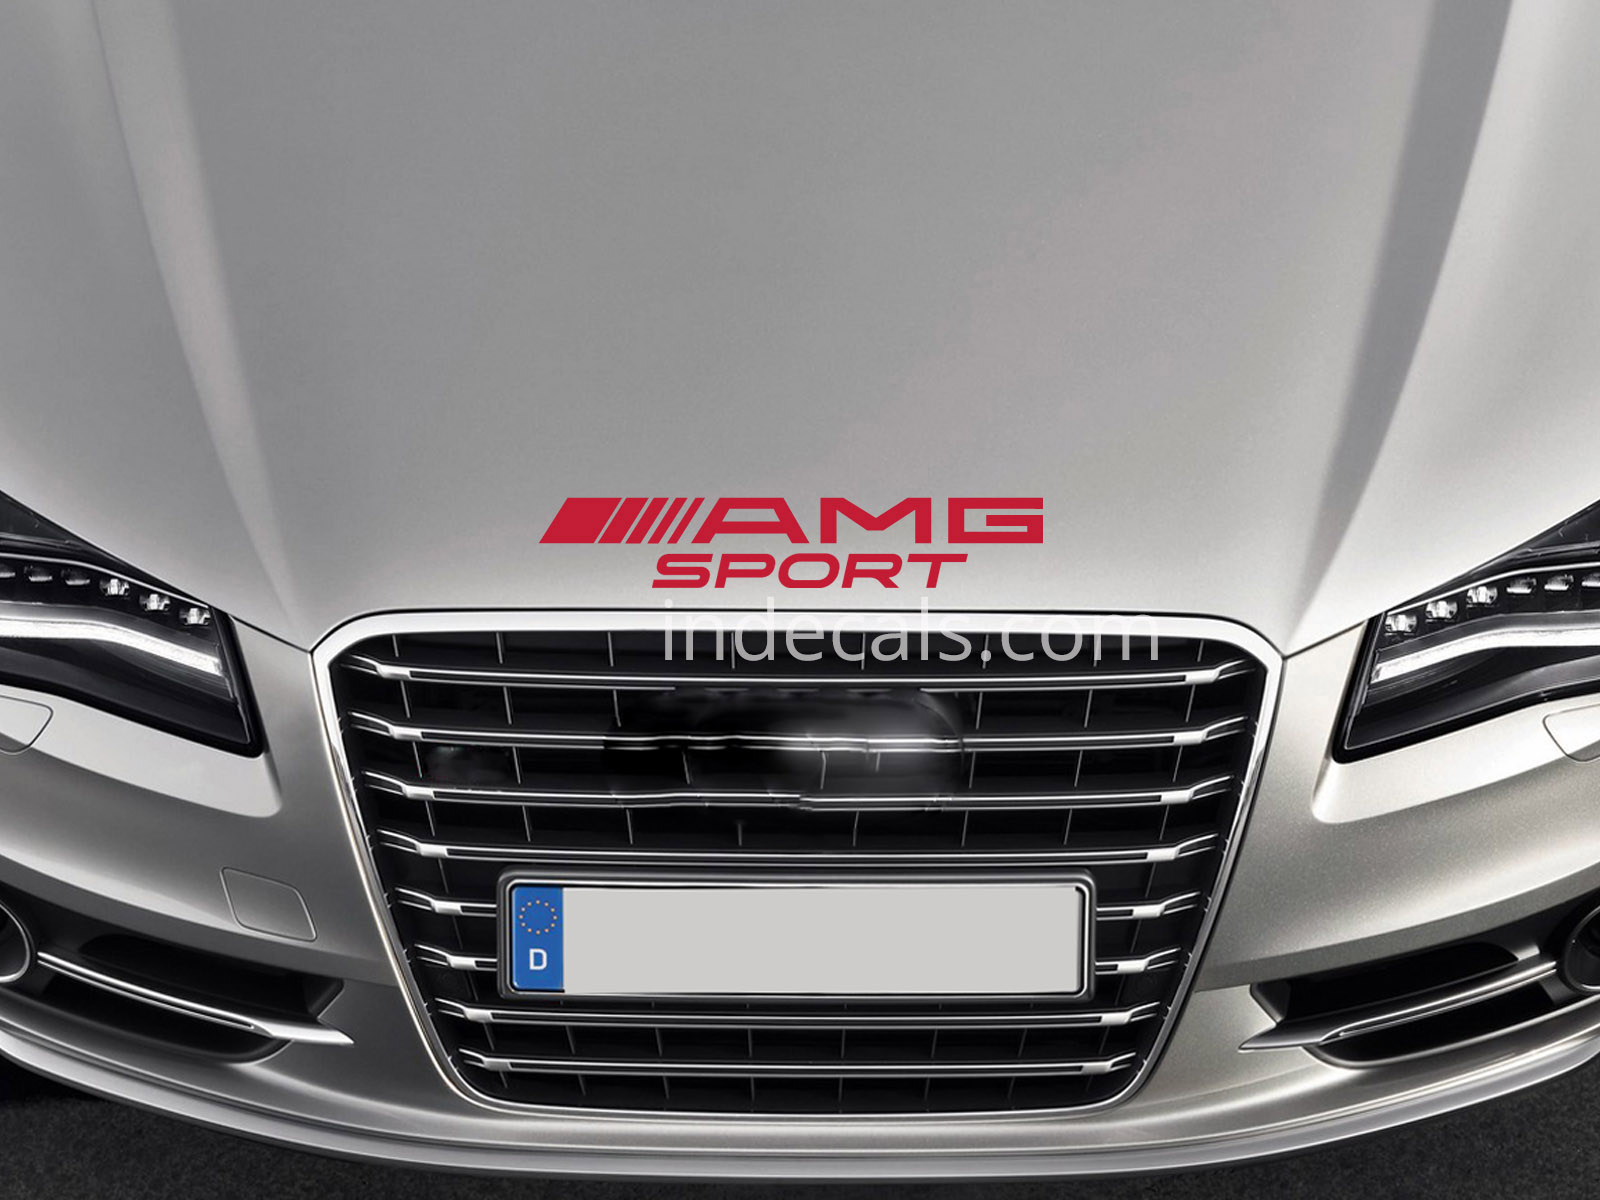 1 x AMG Sport Sticker for Bonnet - Red